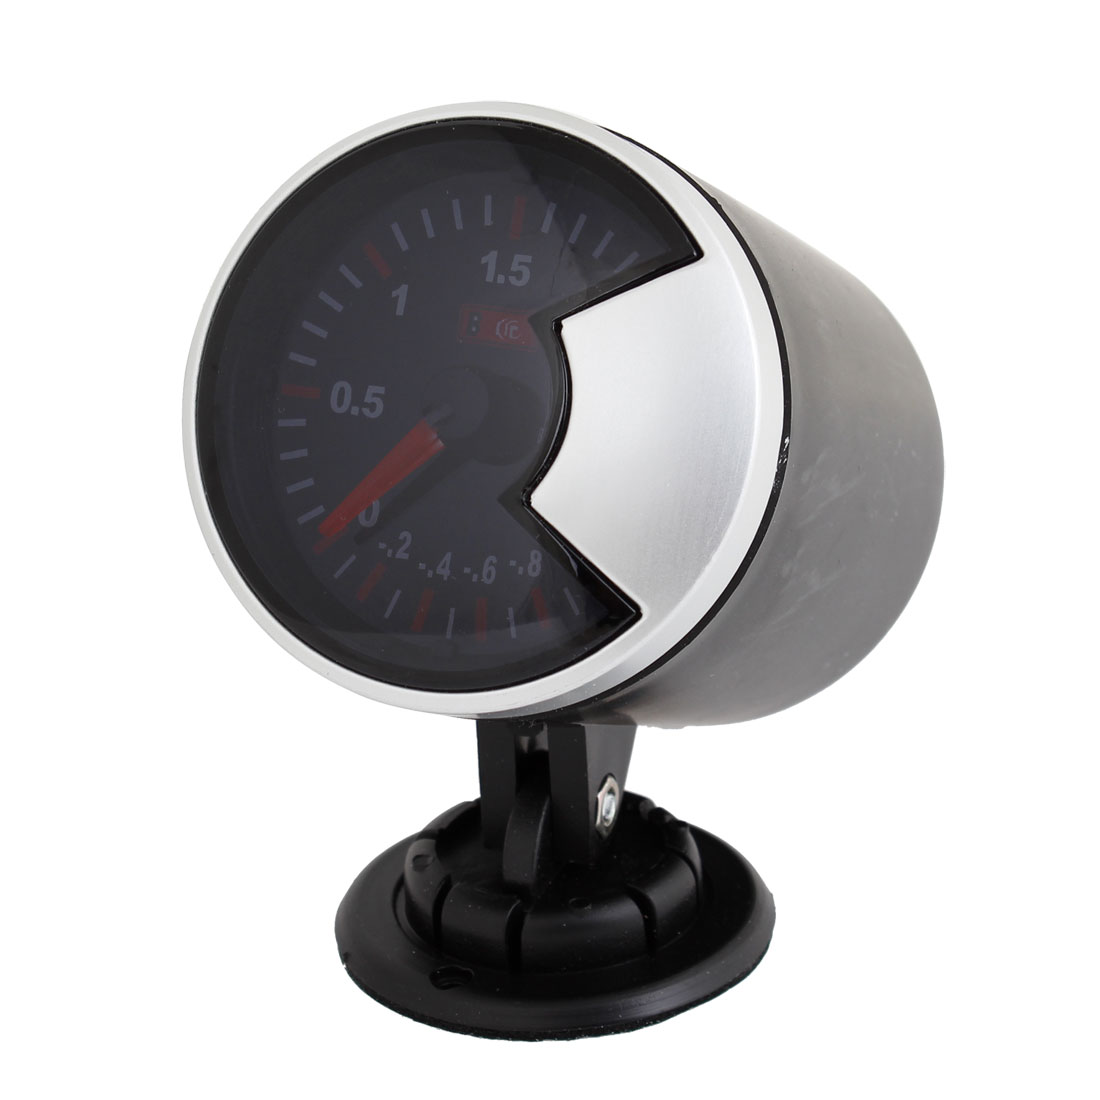 "Smoke Len 2.4"" 60mm Pointer Car Turbo Boost Gauge Meter w Black Pod Holder"